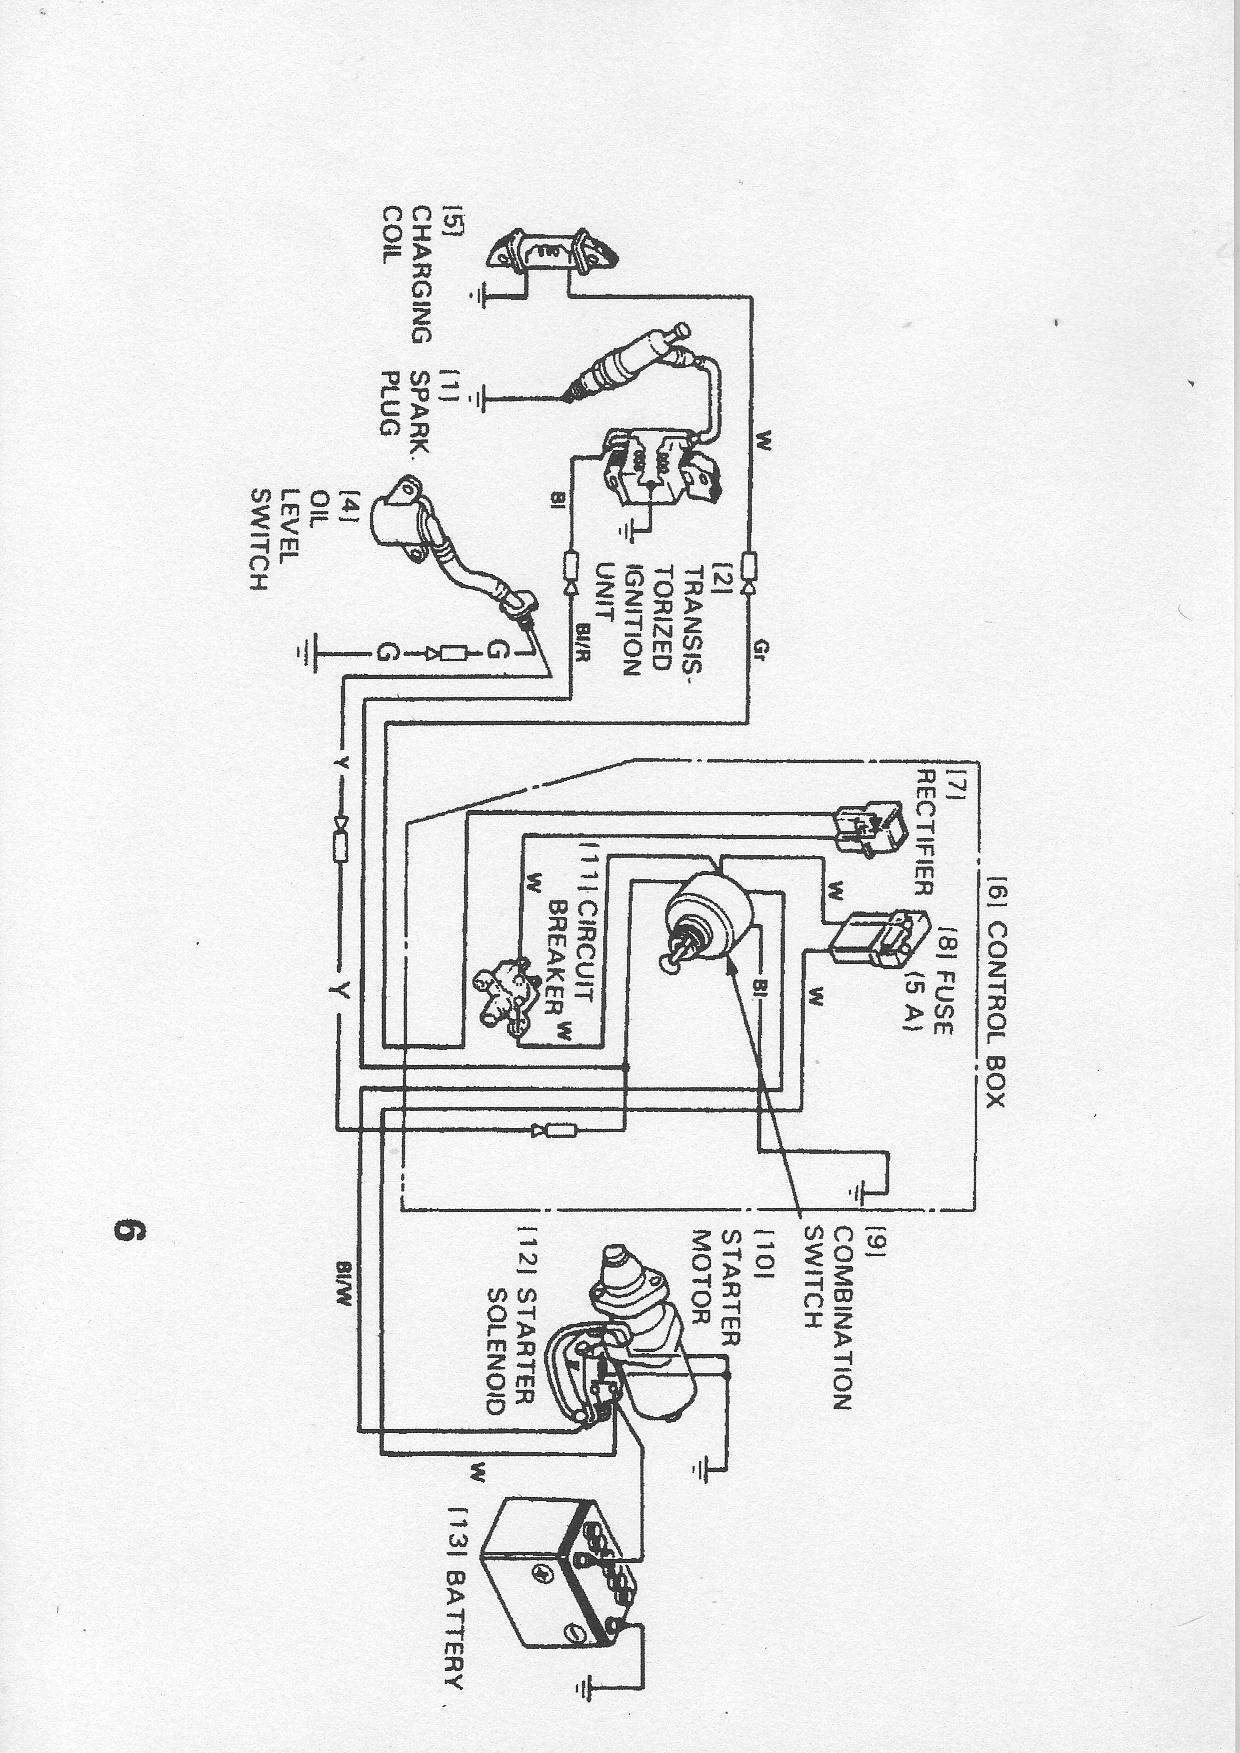 Honda gx engine wiring diagram parts